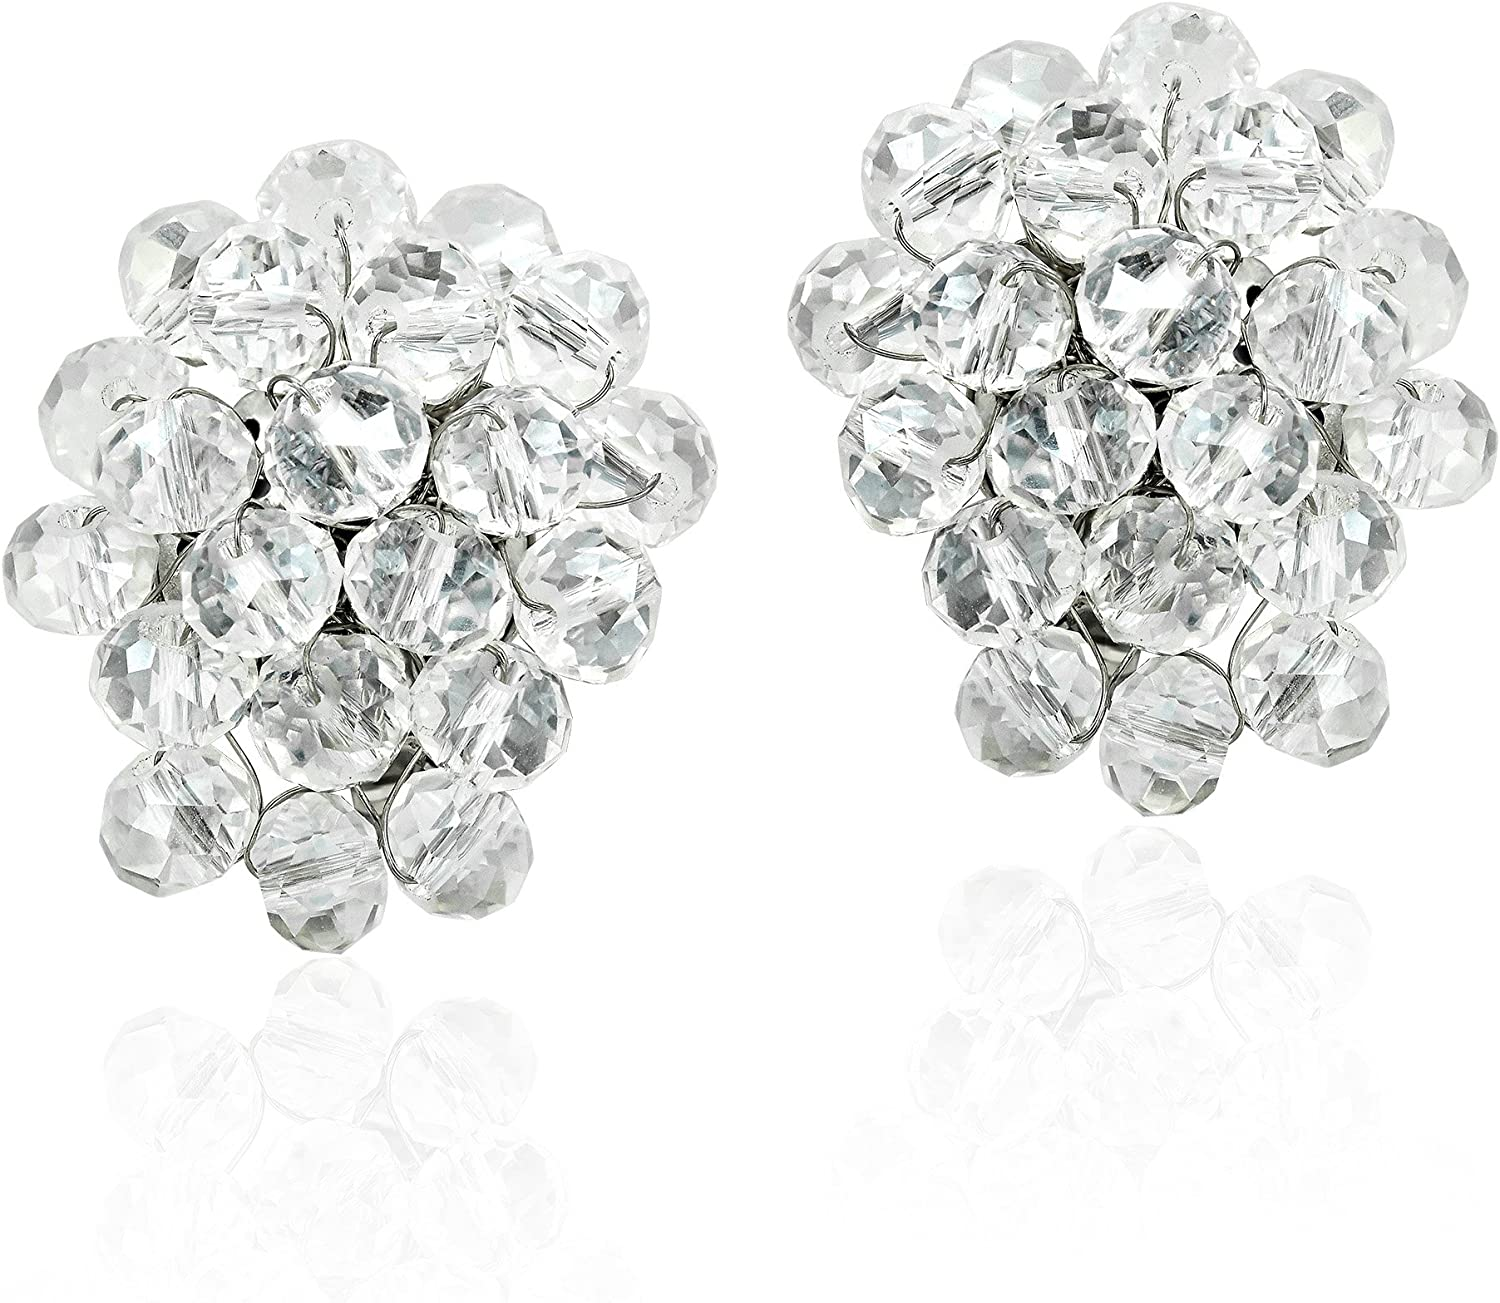 Disco Bling Sparkly Crystal Cluster Clip On Earrings